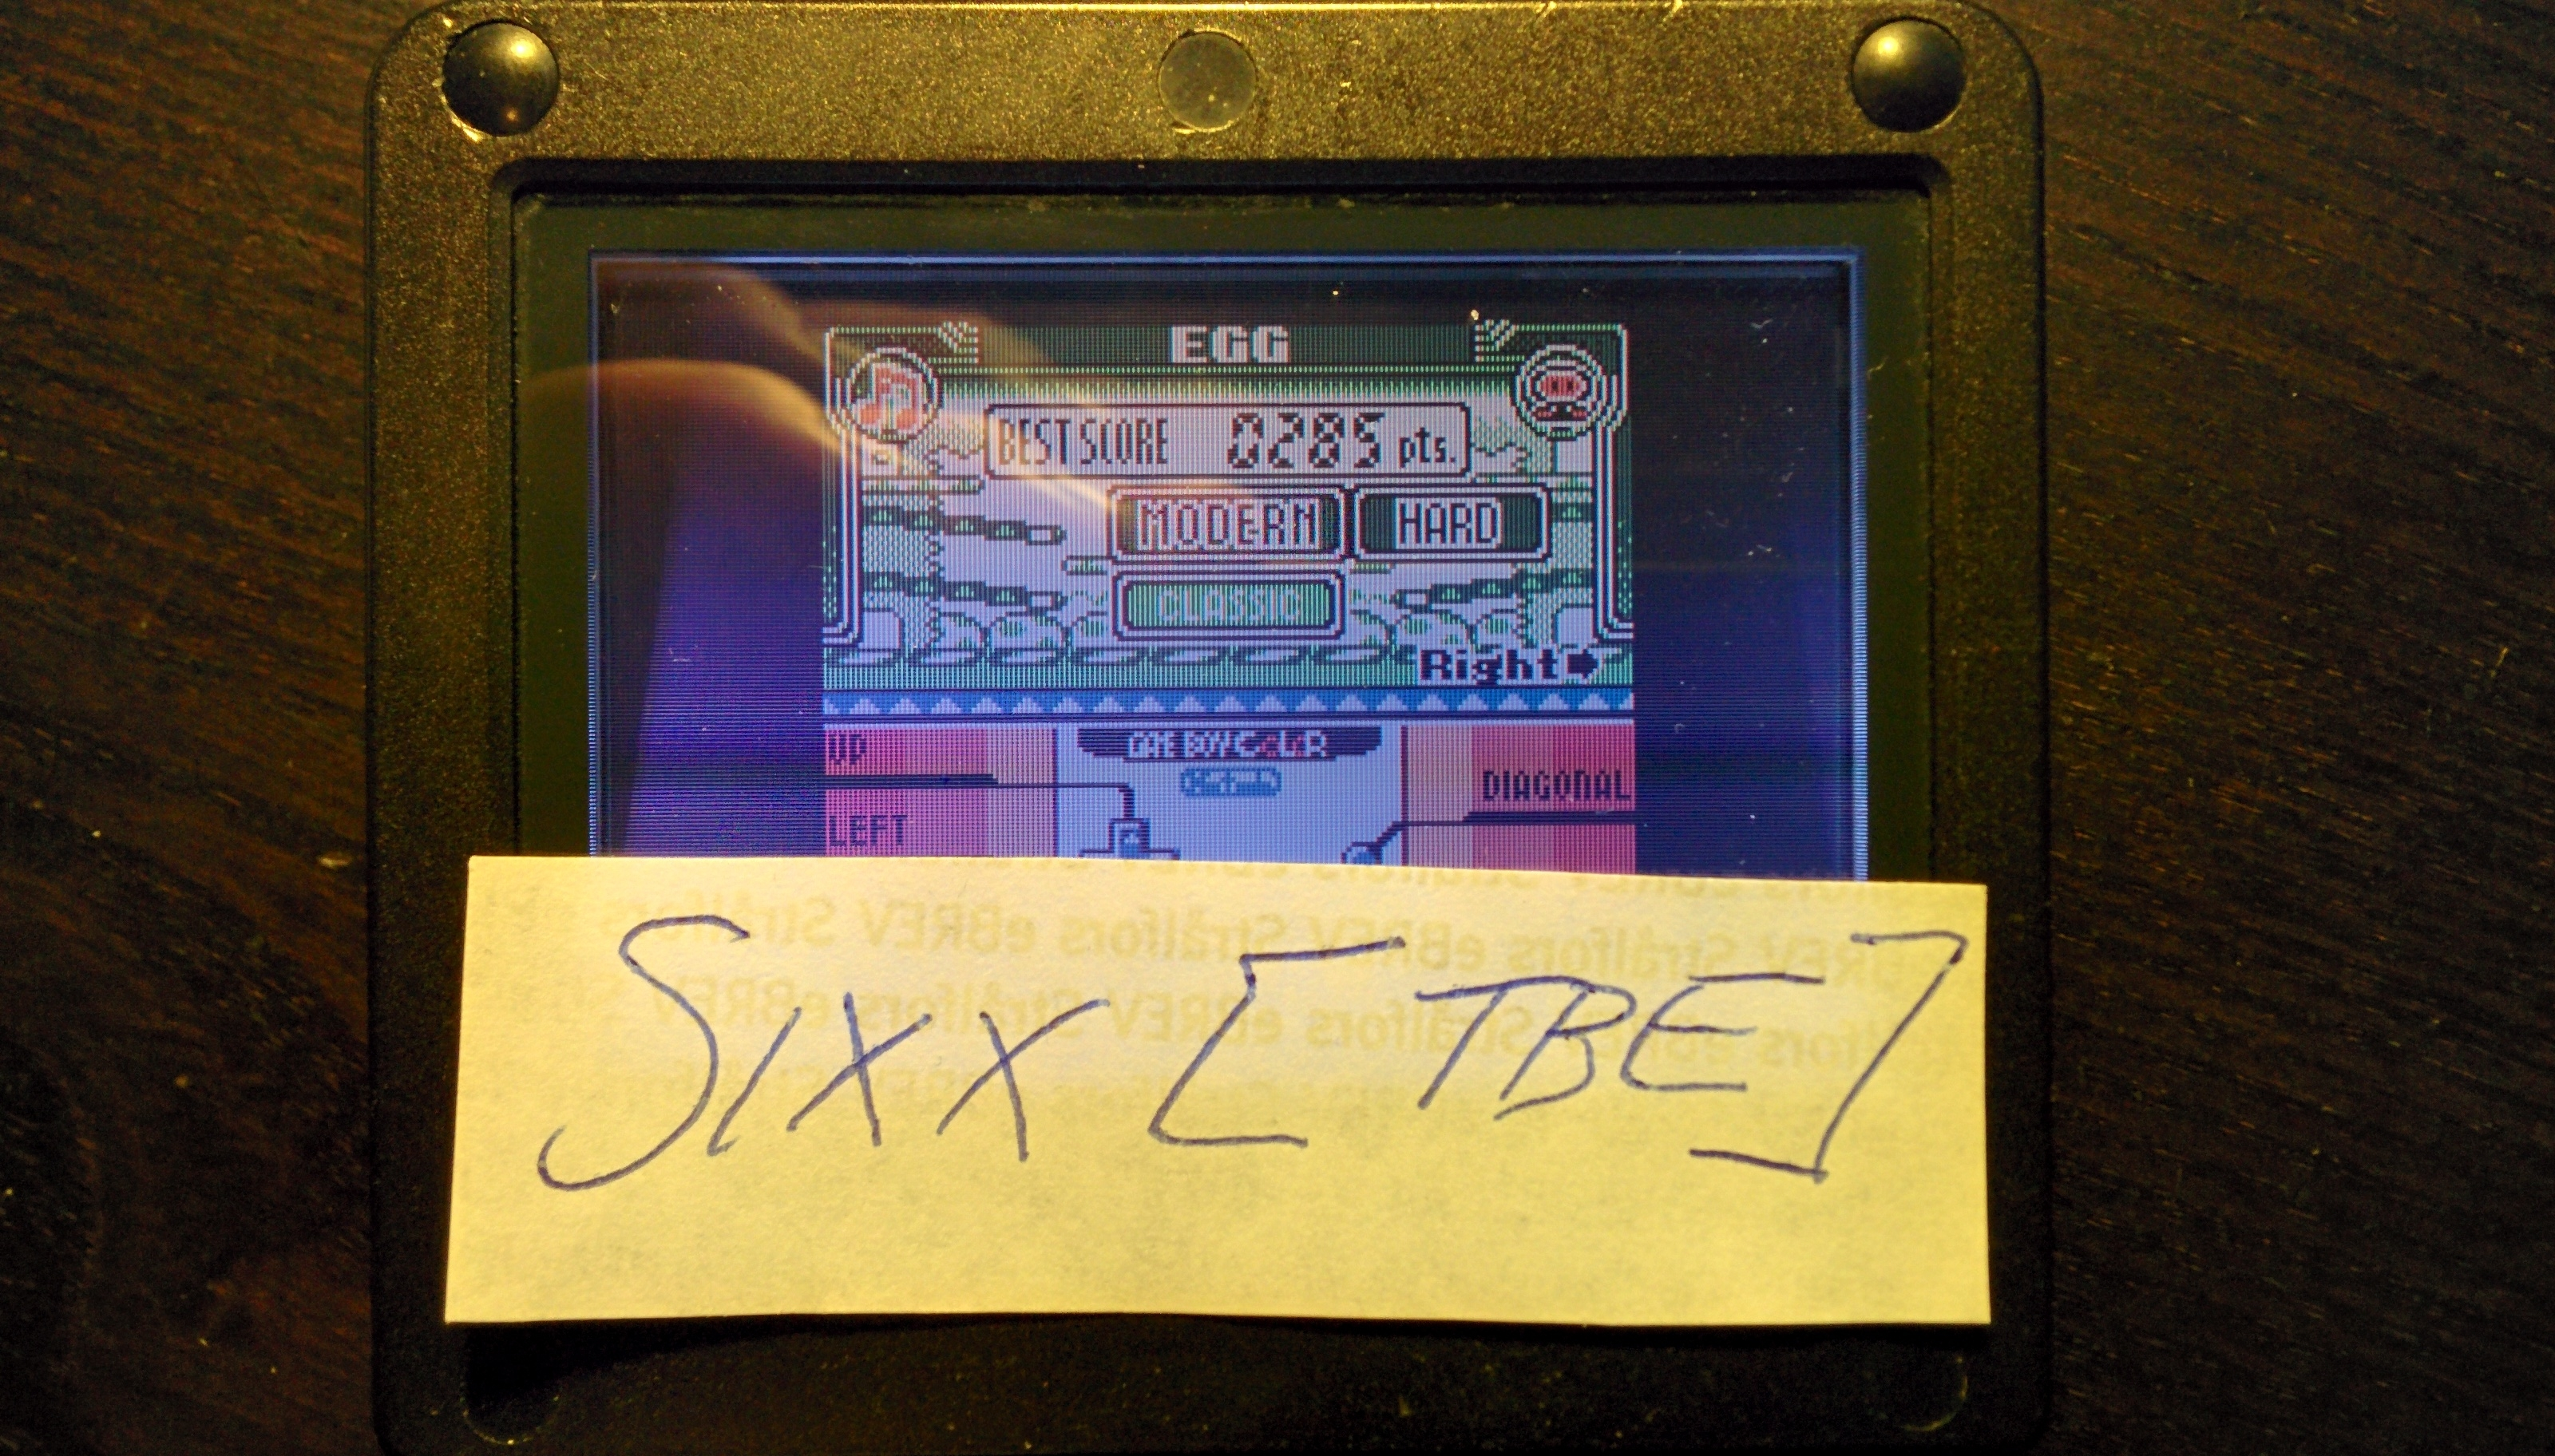 Sixx: Game & Watch Gallery 3: Egg: Modern: Hard (Game Boy Color) 285 points on 2014-09-01 17:16:48